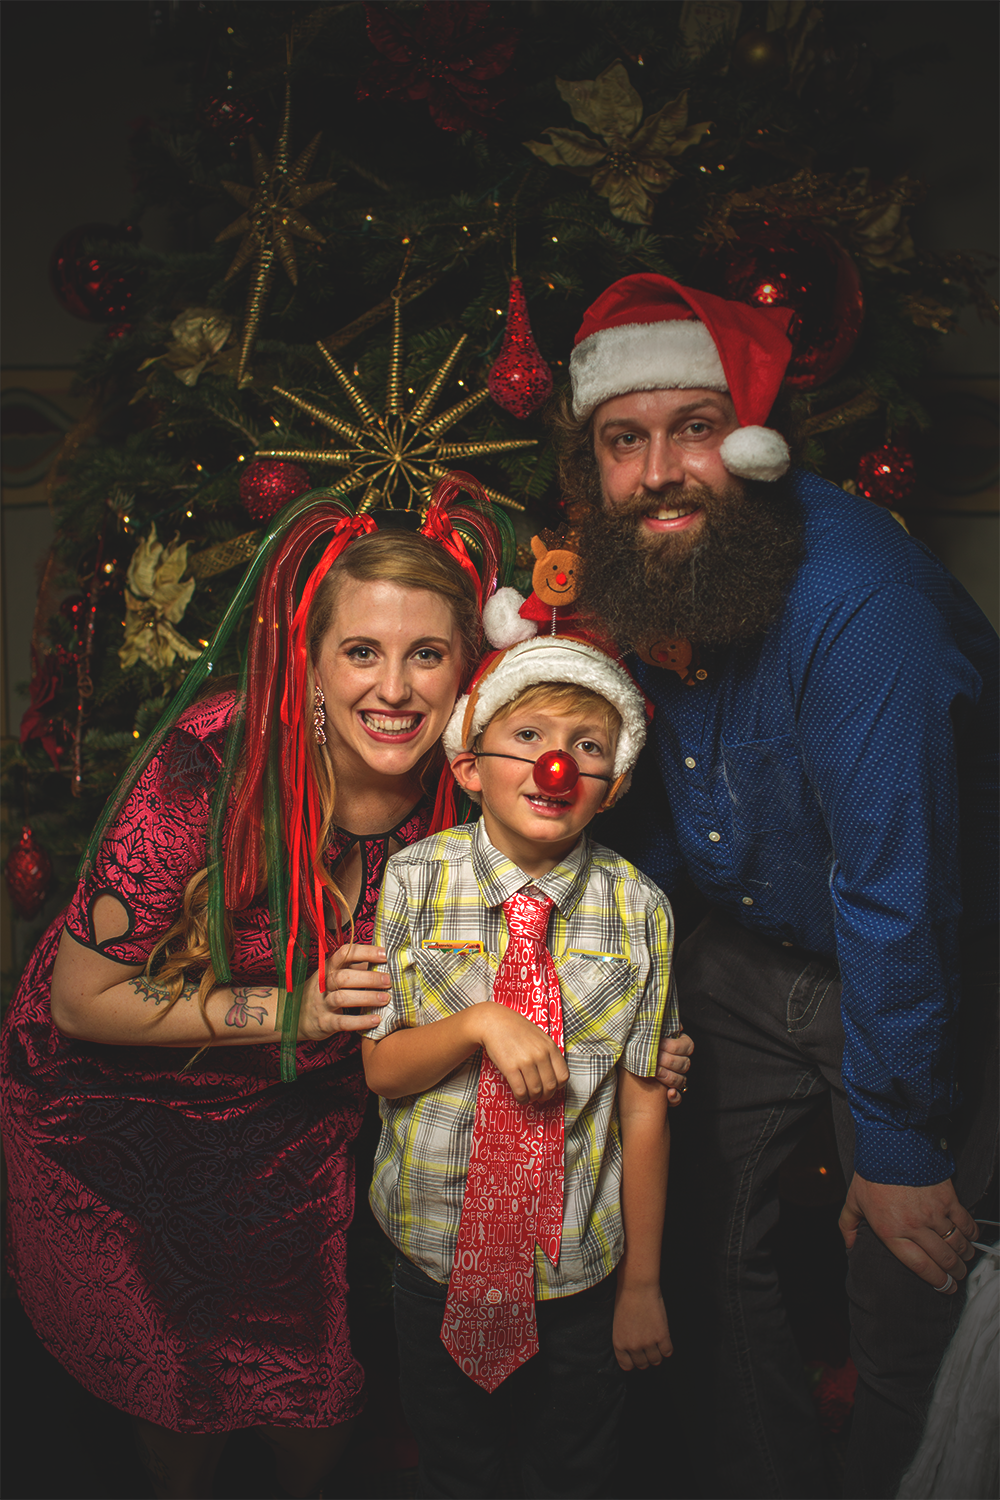 epproperties-vancouver-washington-xmas-party-photolga13.png